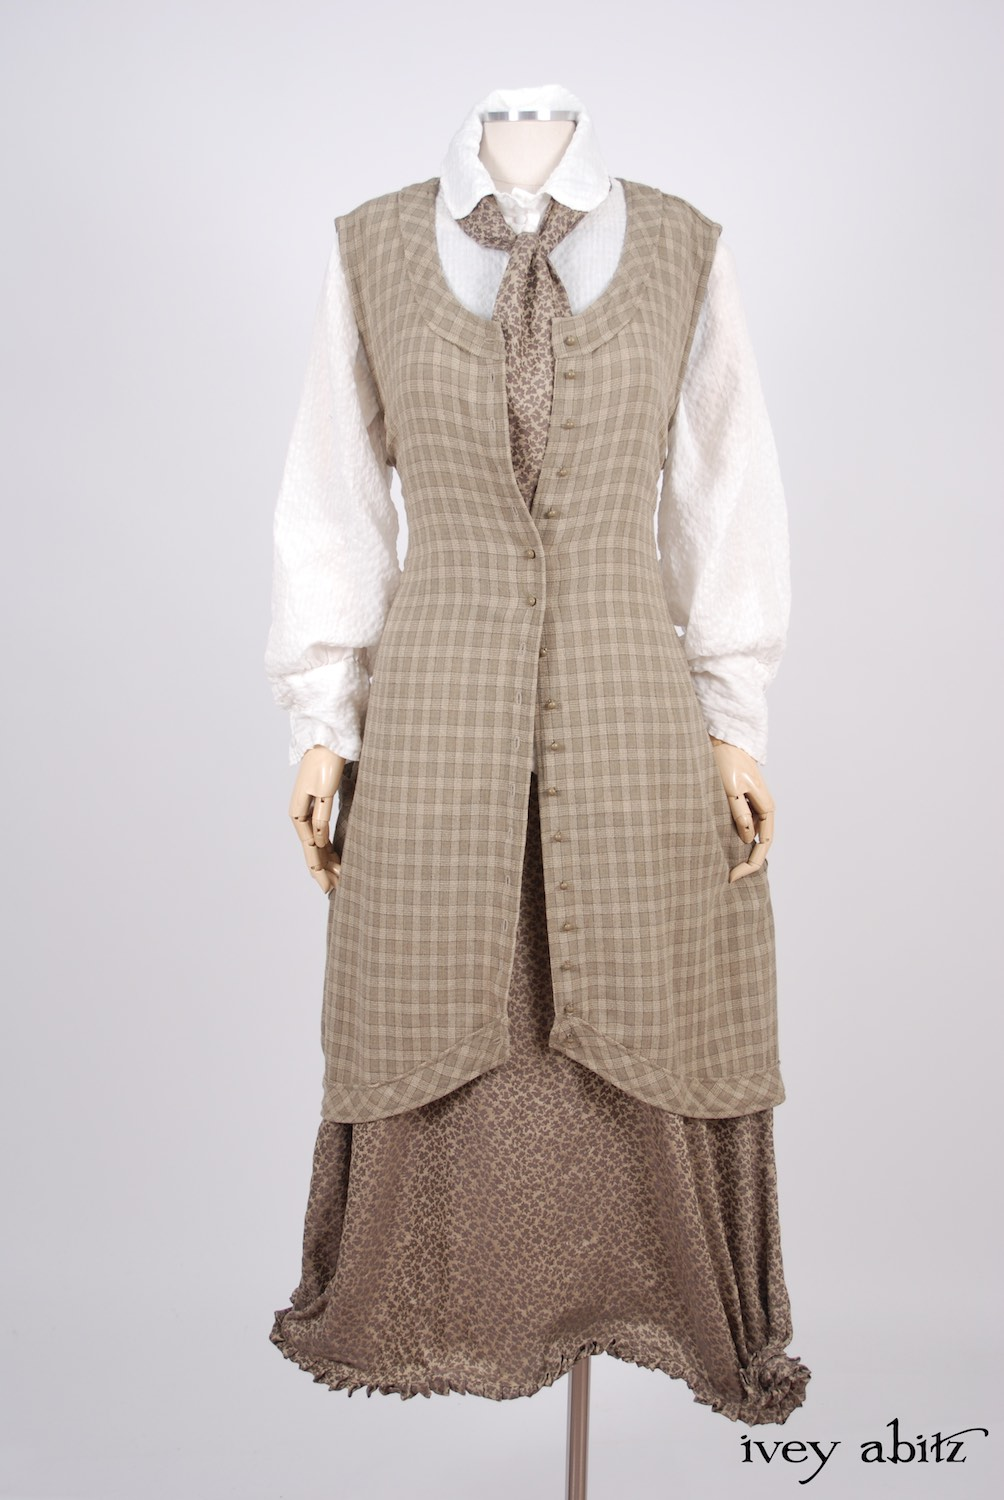 Ivey Abitz - Truitt Shirt in Dove Striped Voile  - Holkham Hall Necktie in Flaxseed Leafy Silk Linen  - Truitt Frock in Flaxseed Plaid Weave  - Mathilda Frock in Flaxseed Vine Silk Linen, Low Water Length